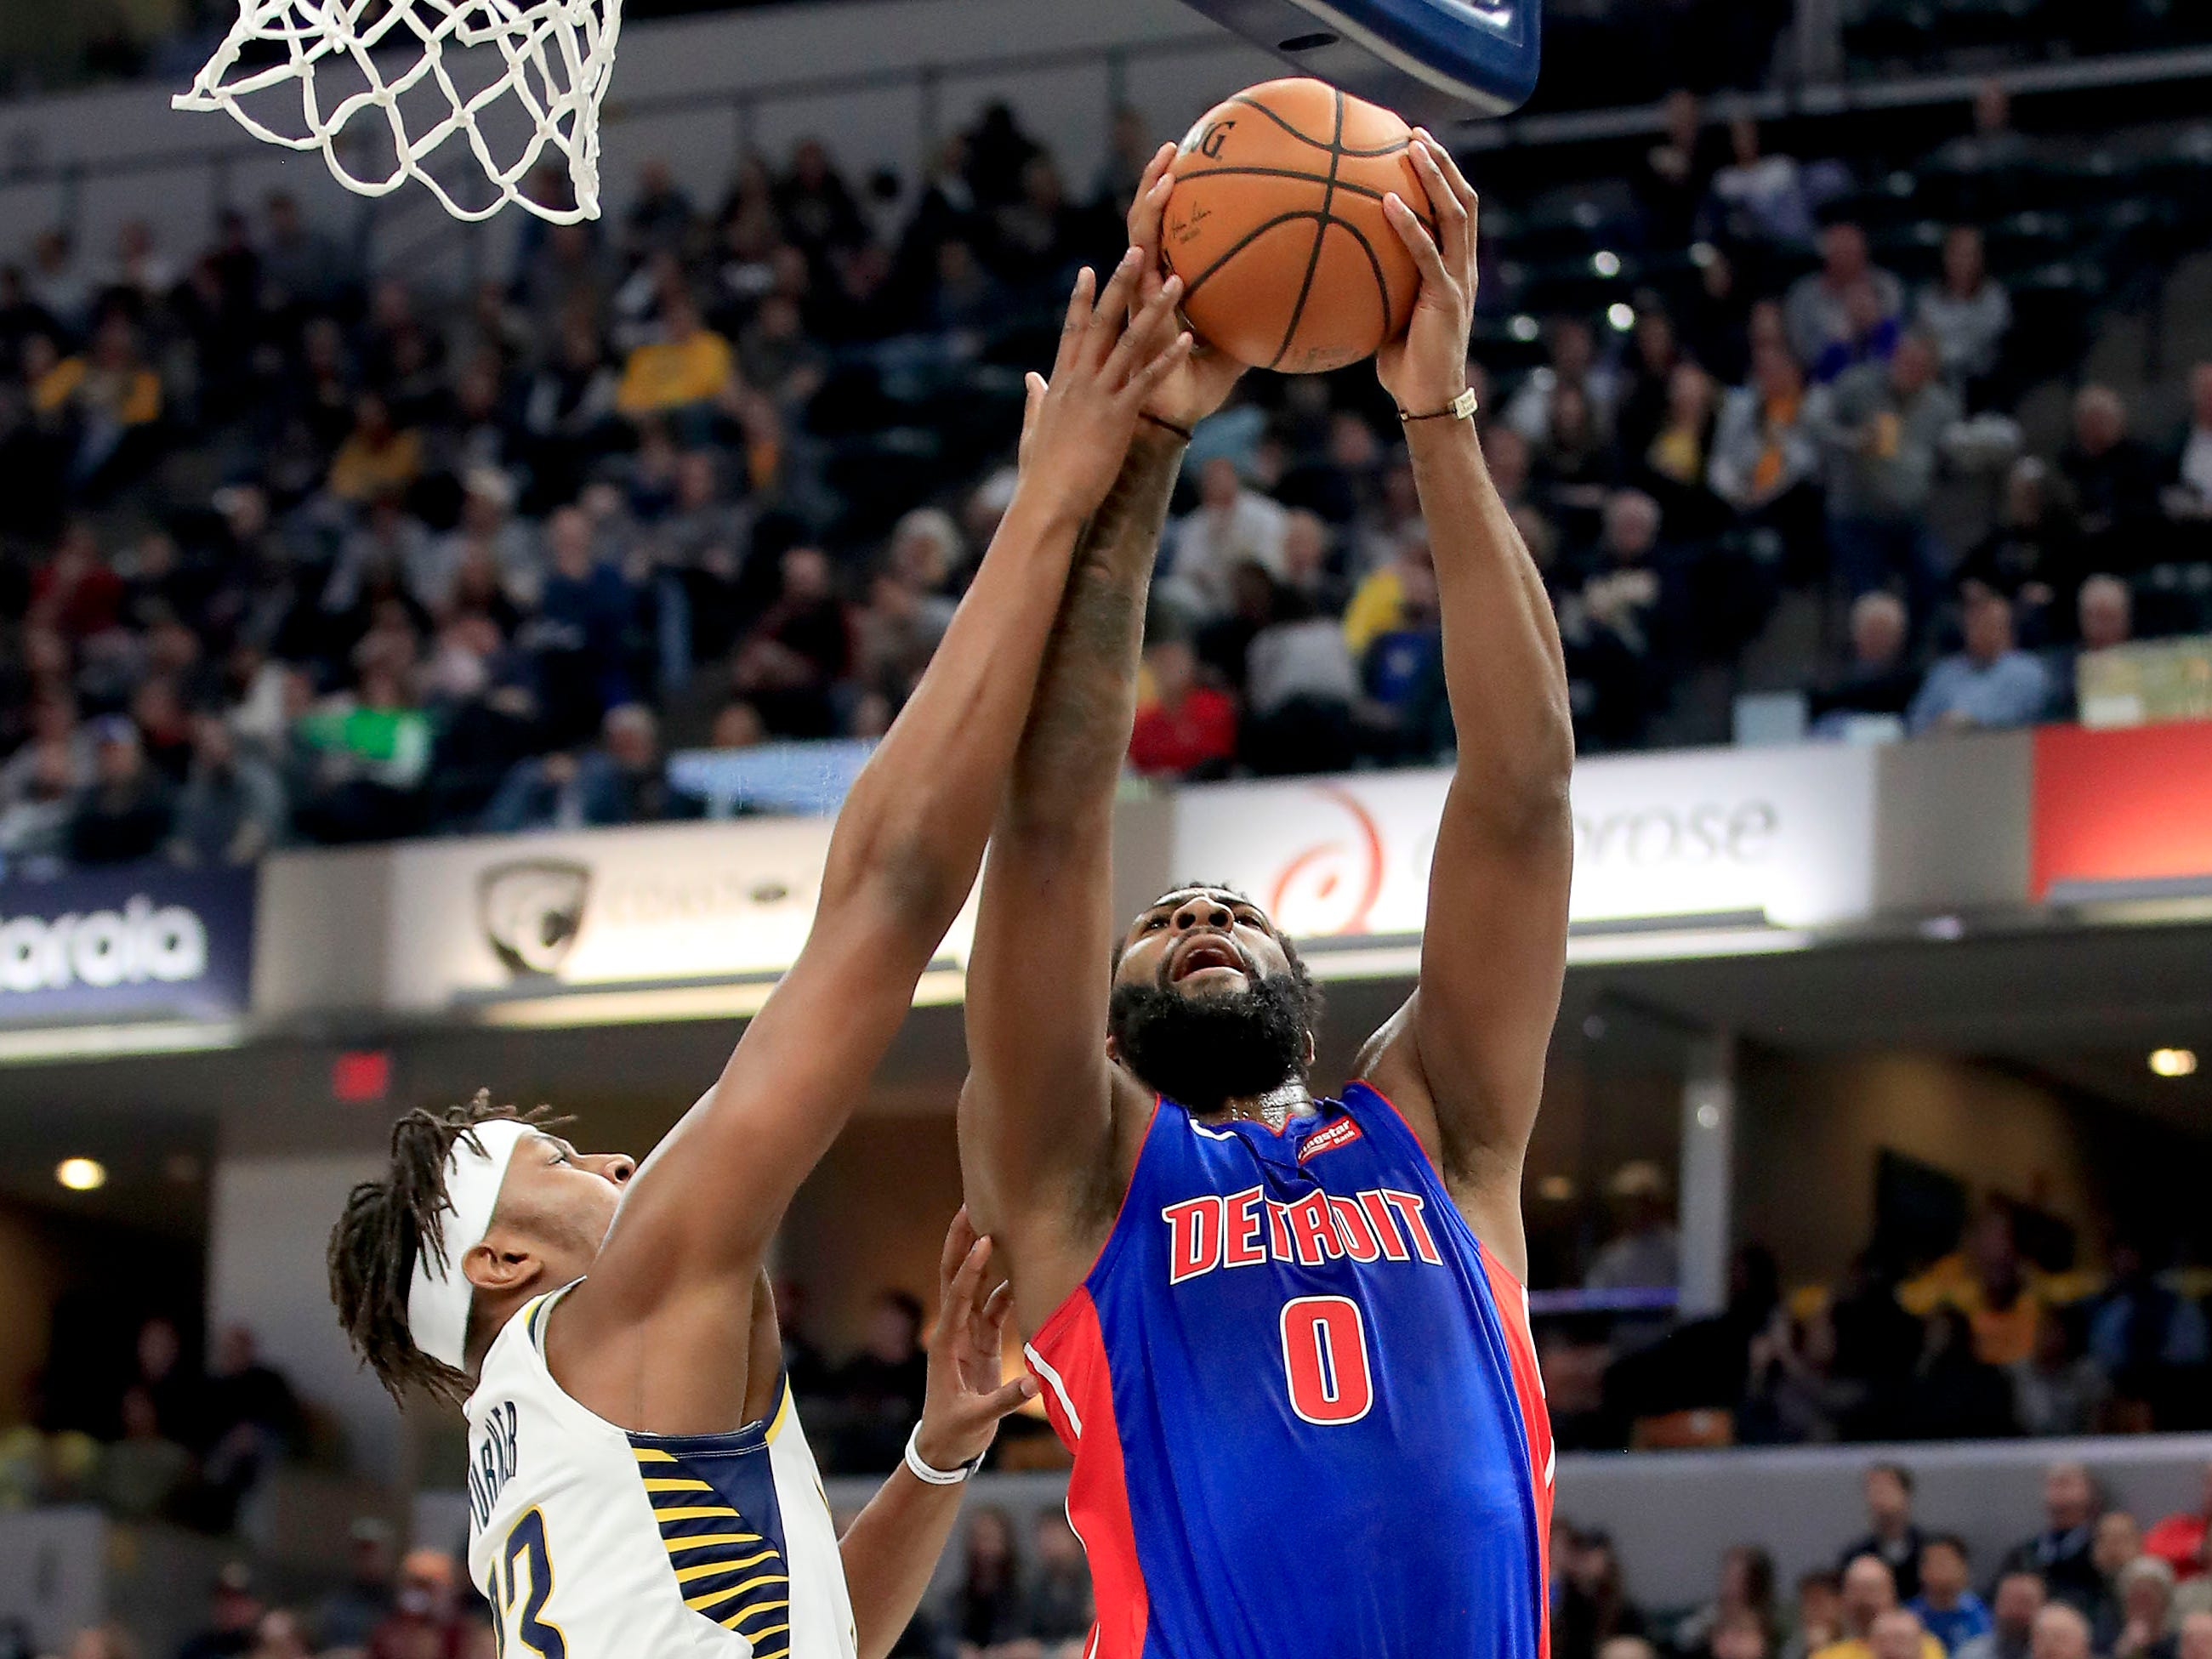 Detroit Pistons' Andre Drummond shoots against the Indiana Pacers' Myles Turner at Bankers Life Fieldhouse on April 1, 2019 in Indianapolis.